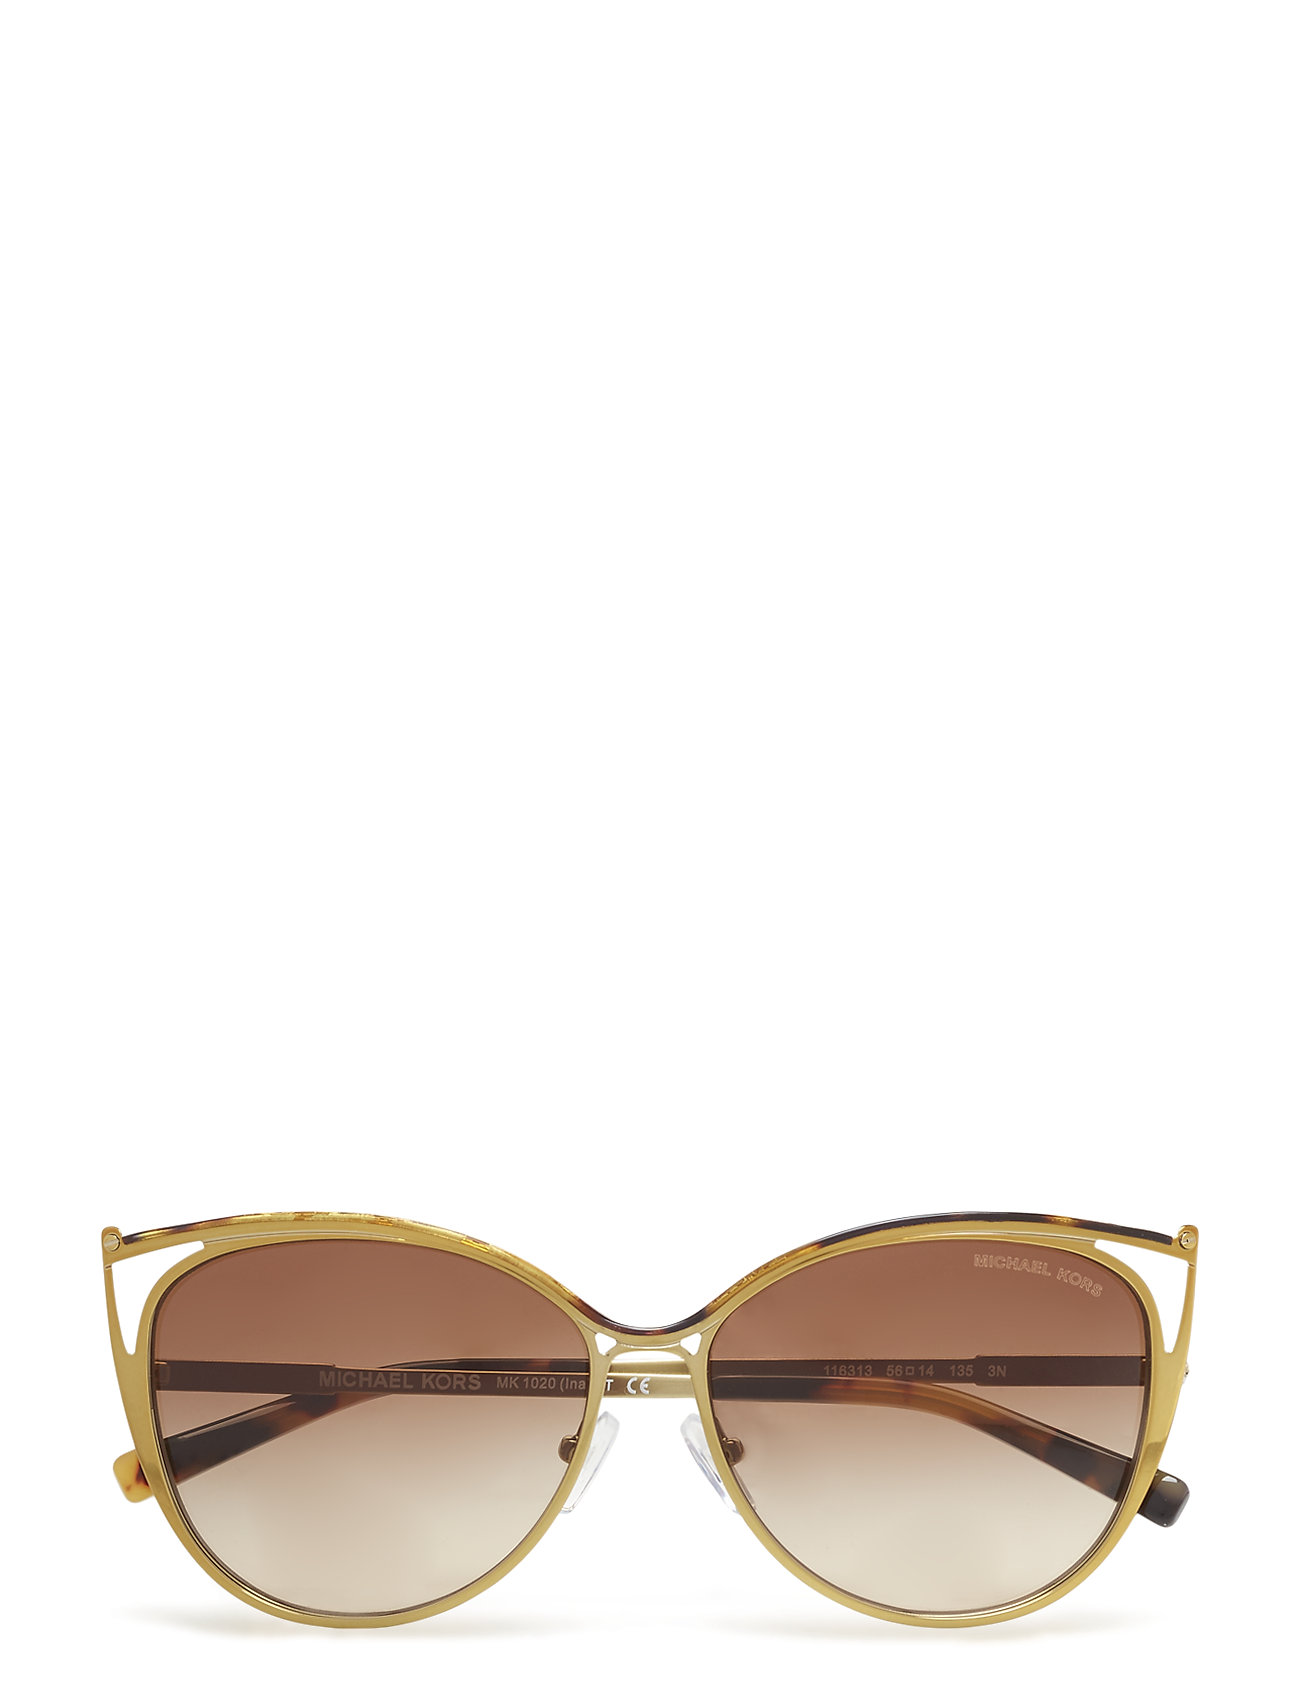 Cat Eye Solbriller Brun Michael Kors Sunglasses